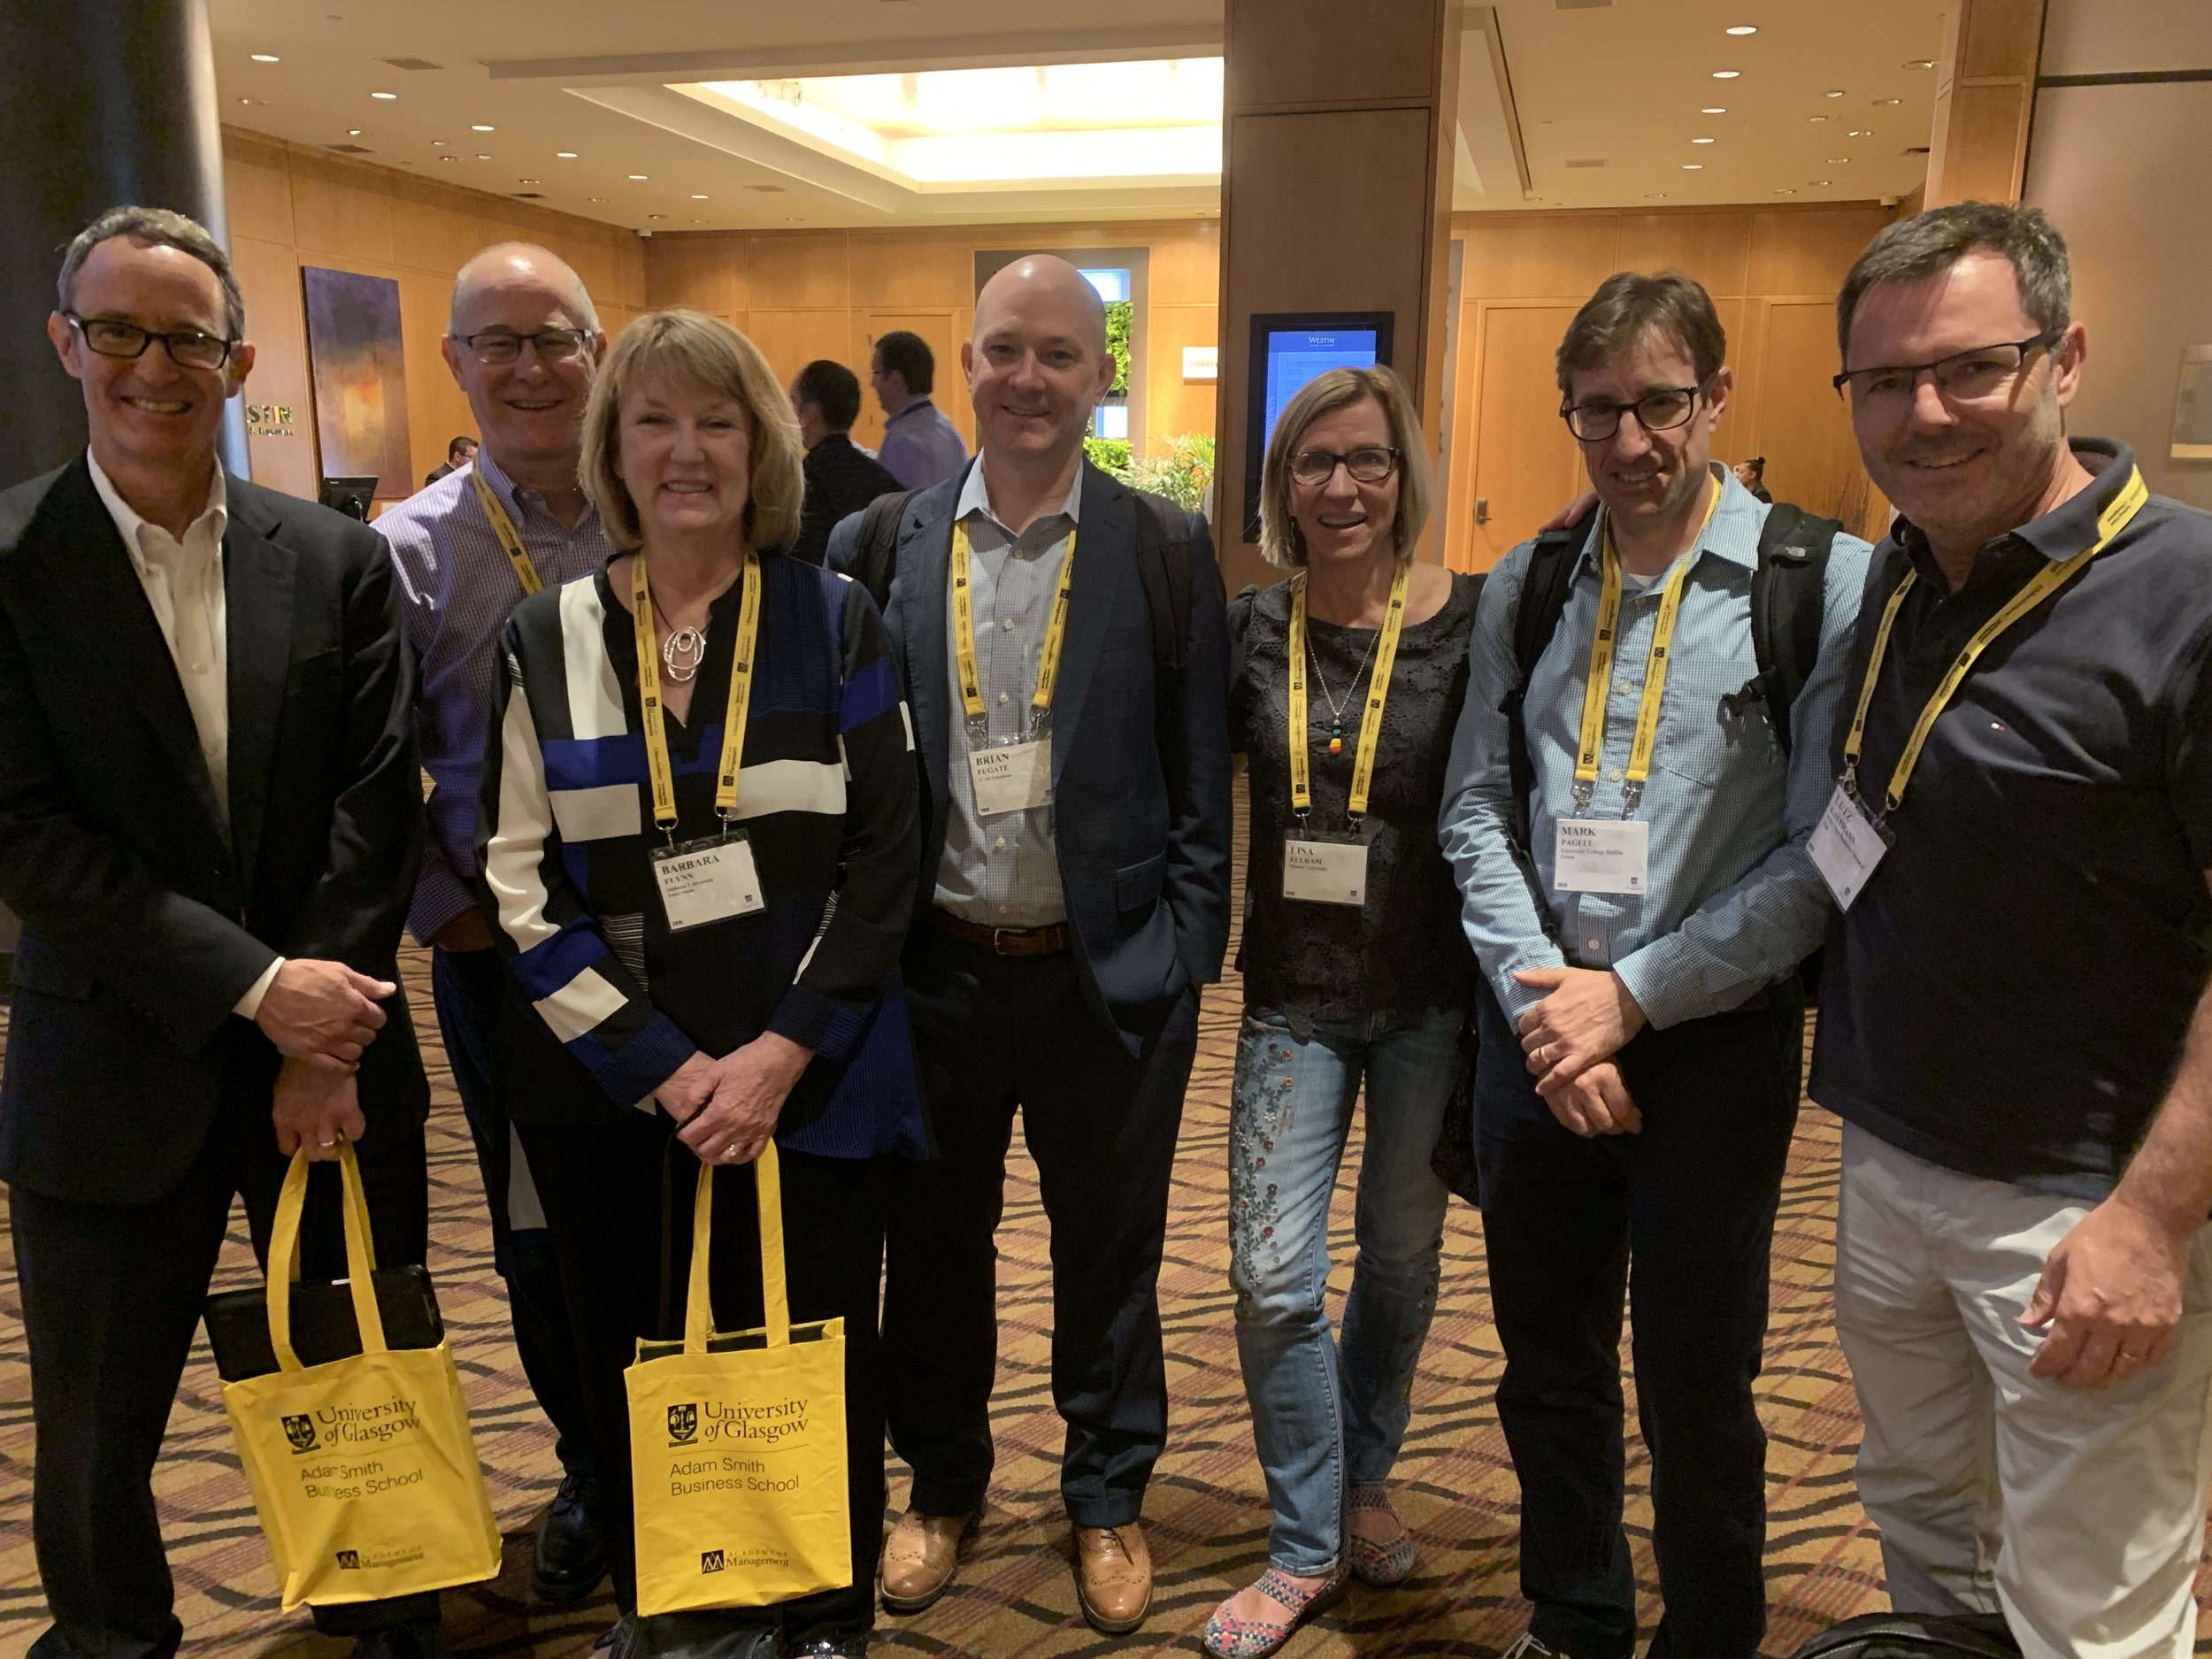 JSCM Editors joined by previous Editors